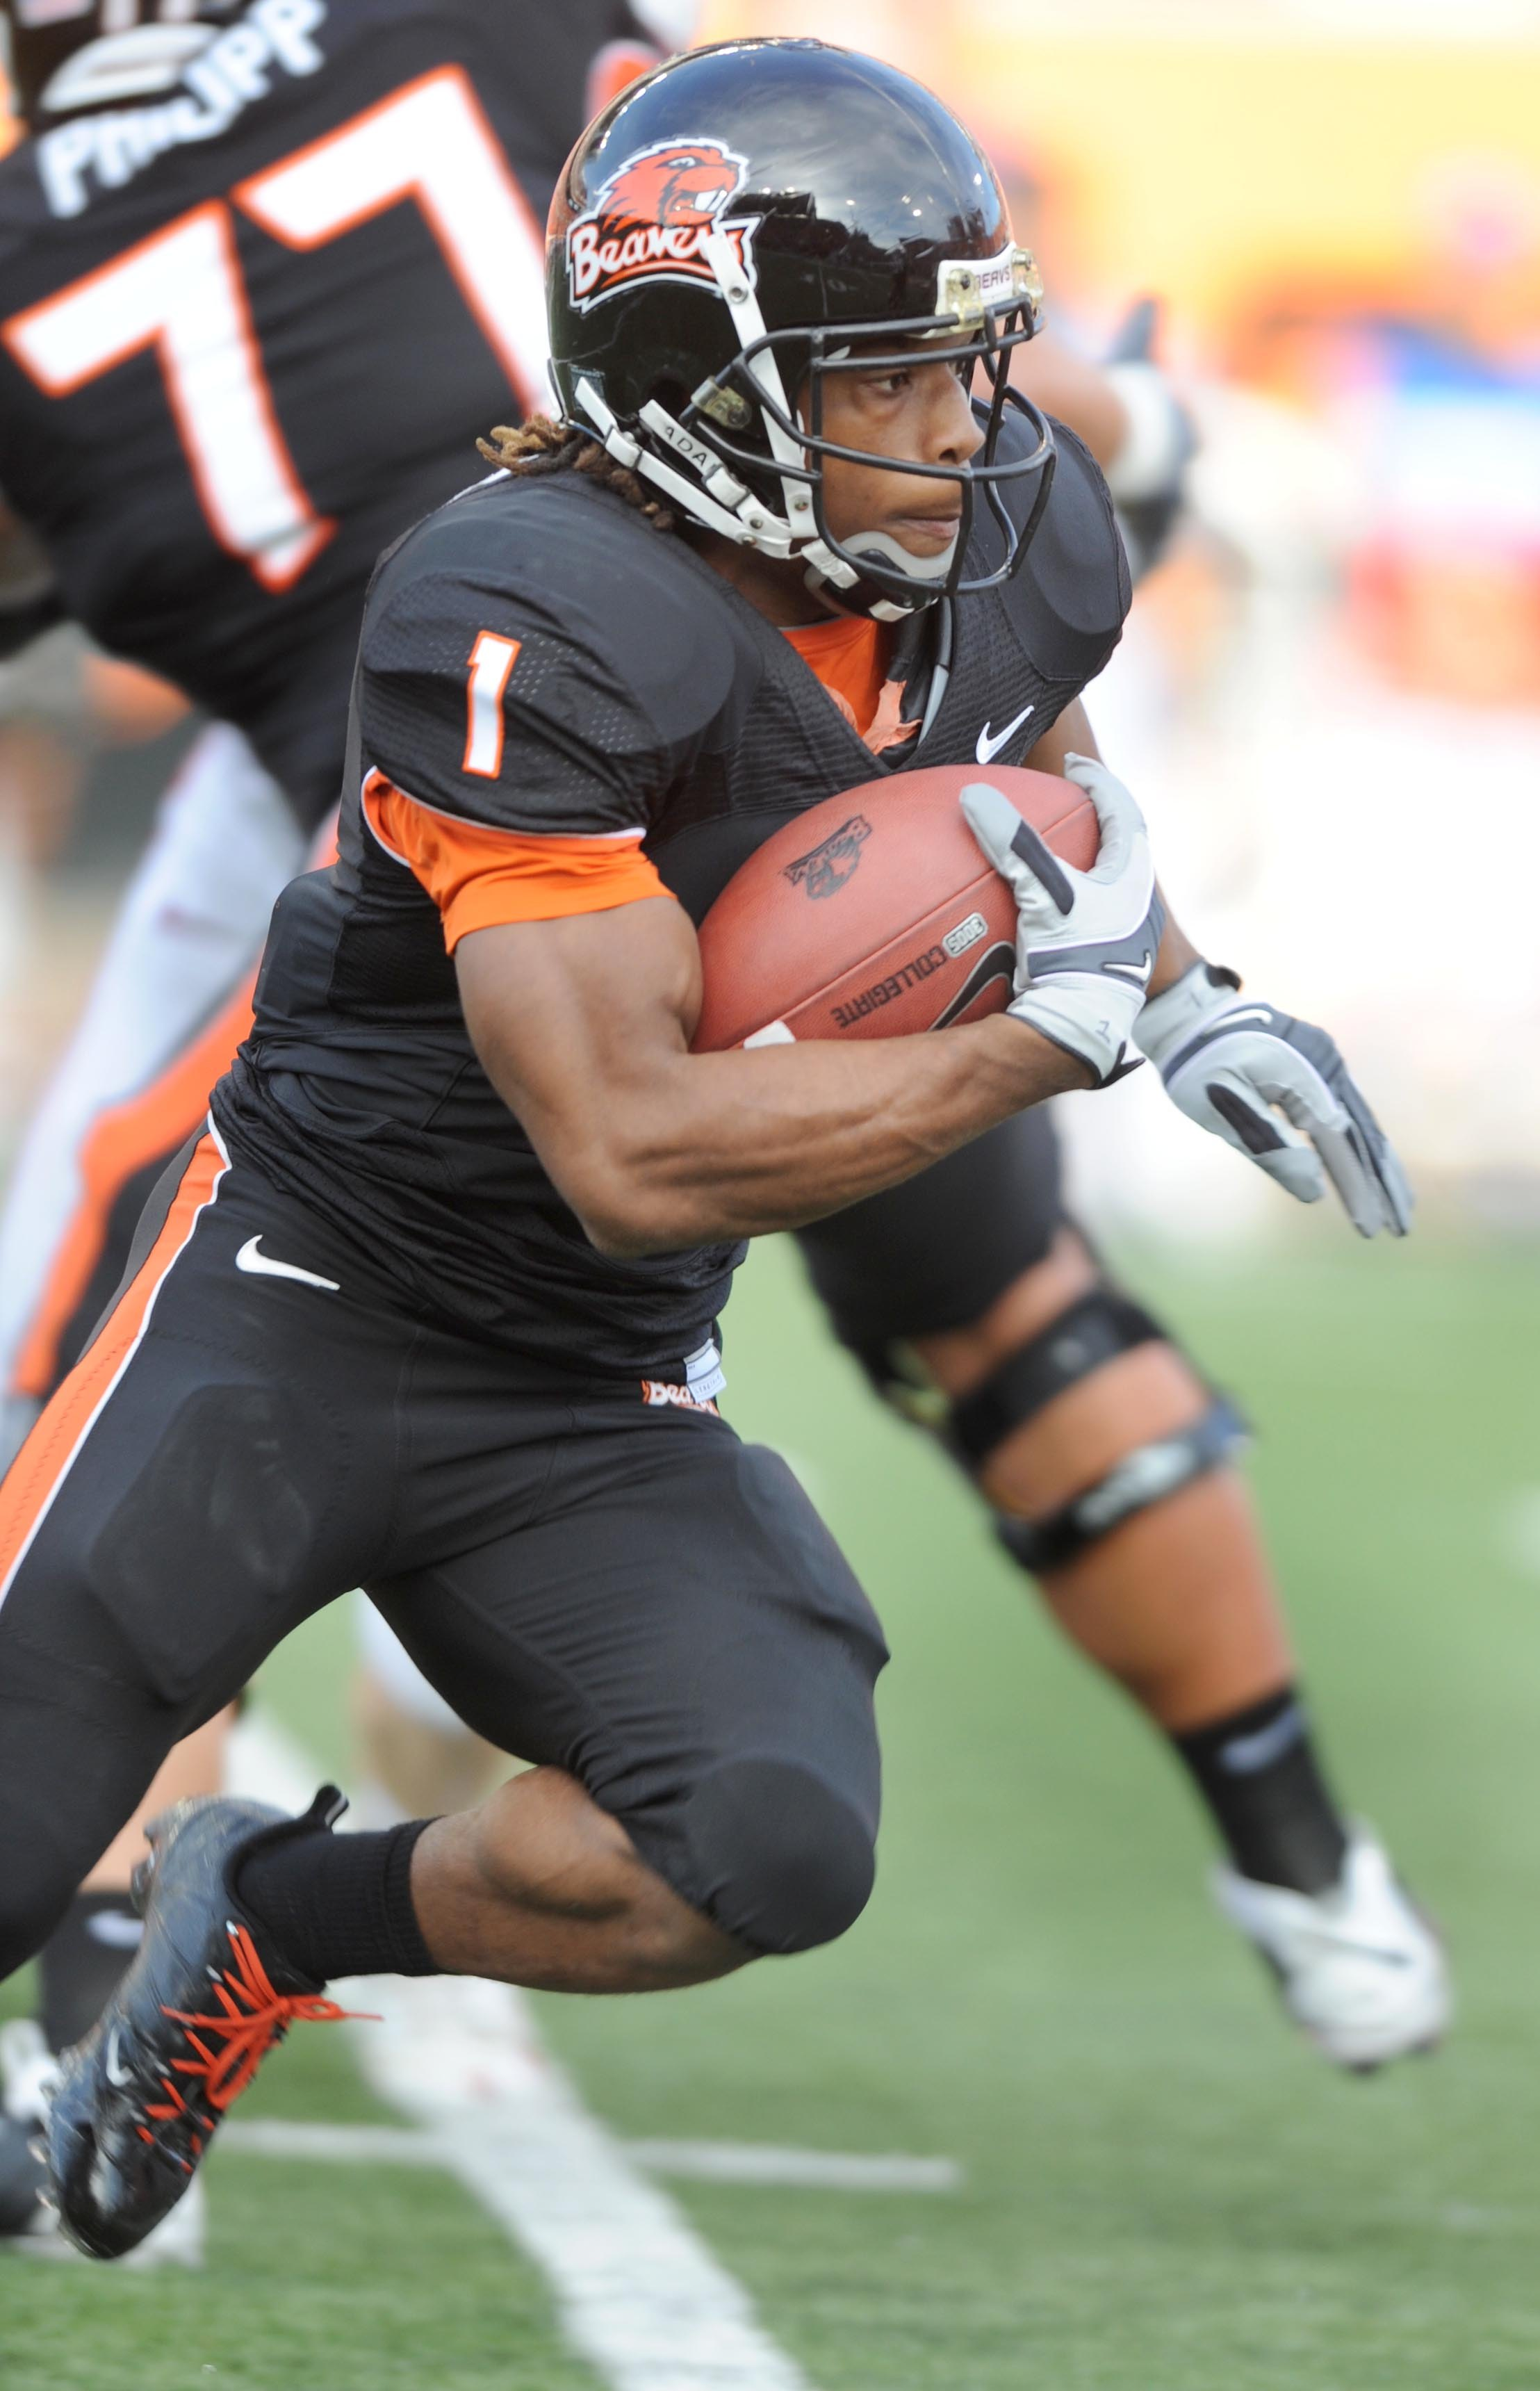 CORVALLIS, OR - OCTOBER 10: Running back Jacquizz Rodgers #1 of the Oregon State Beavers looks for some running room in the first quarter of the game against the Stanford Cardinals at Reser Stadium on October 10, 2009 in Corvallis, Oregon. Oregon State wo